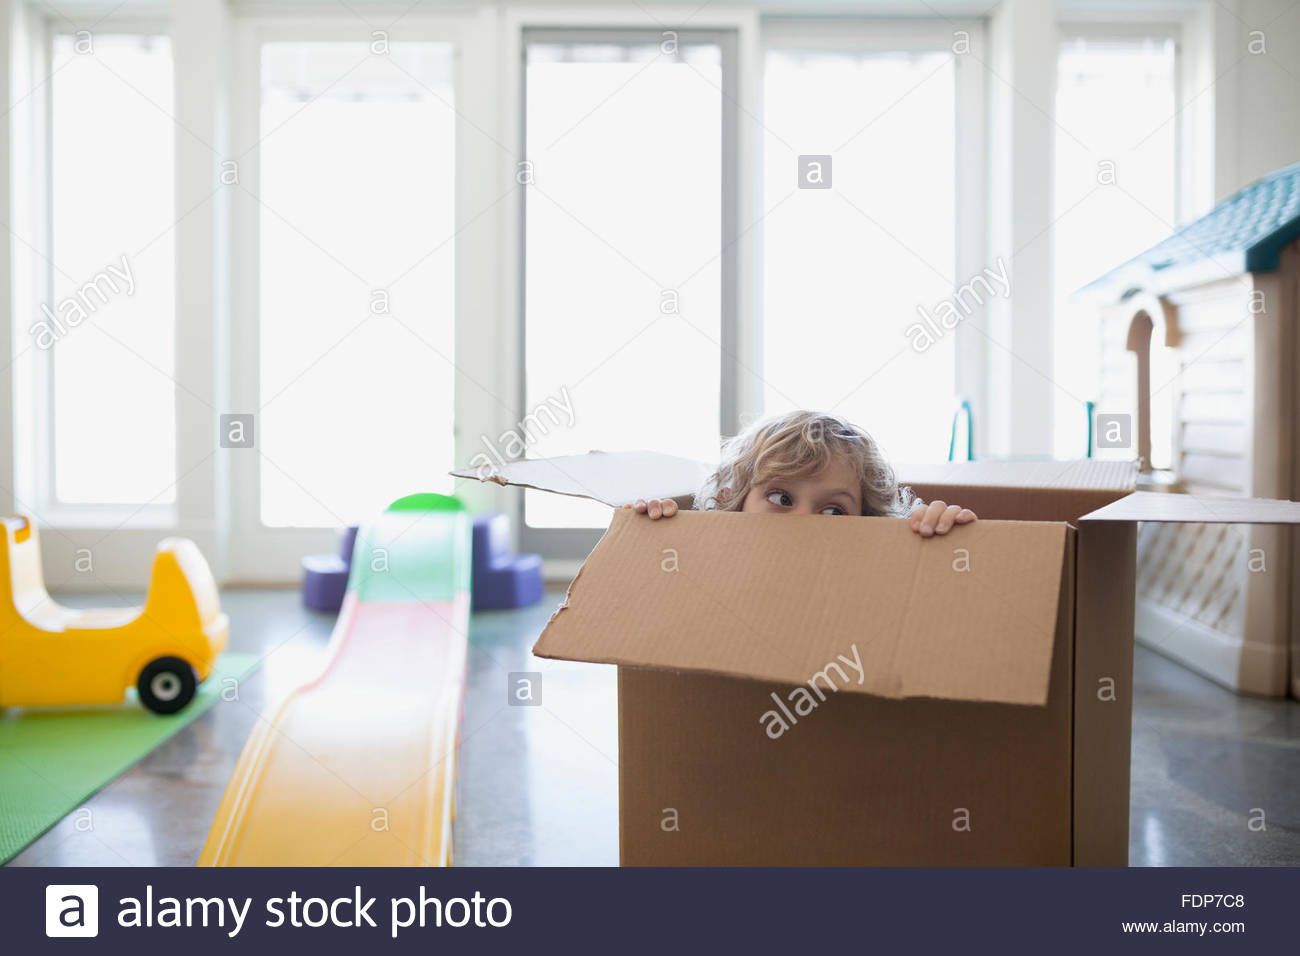 Boy hiding in cardboard box Photo Stock